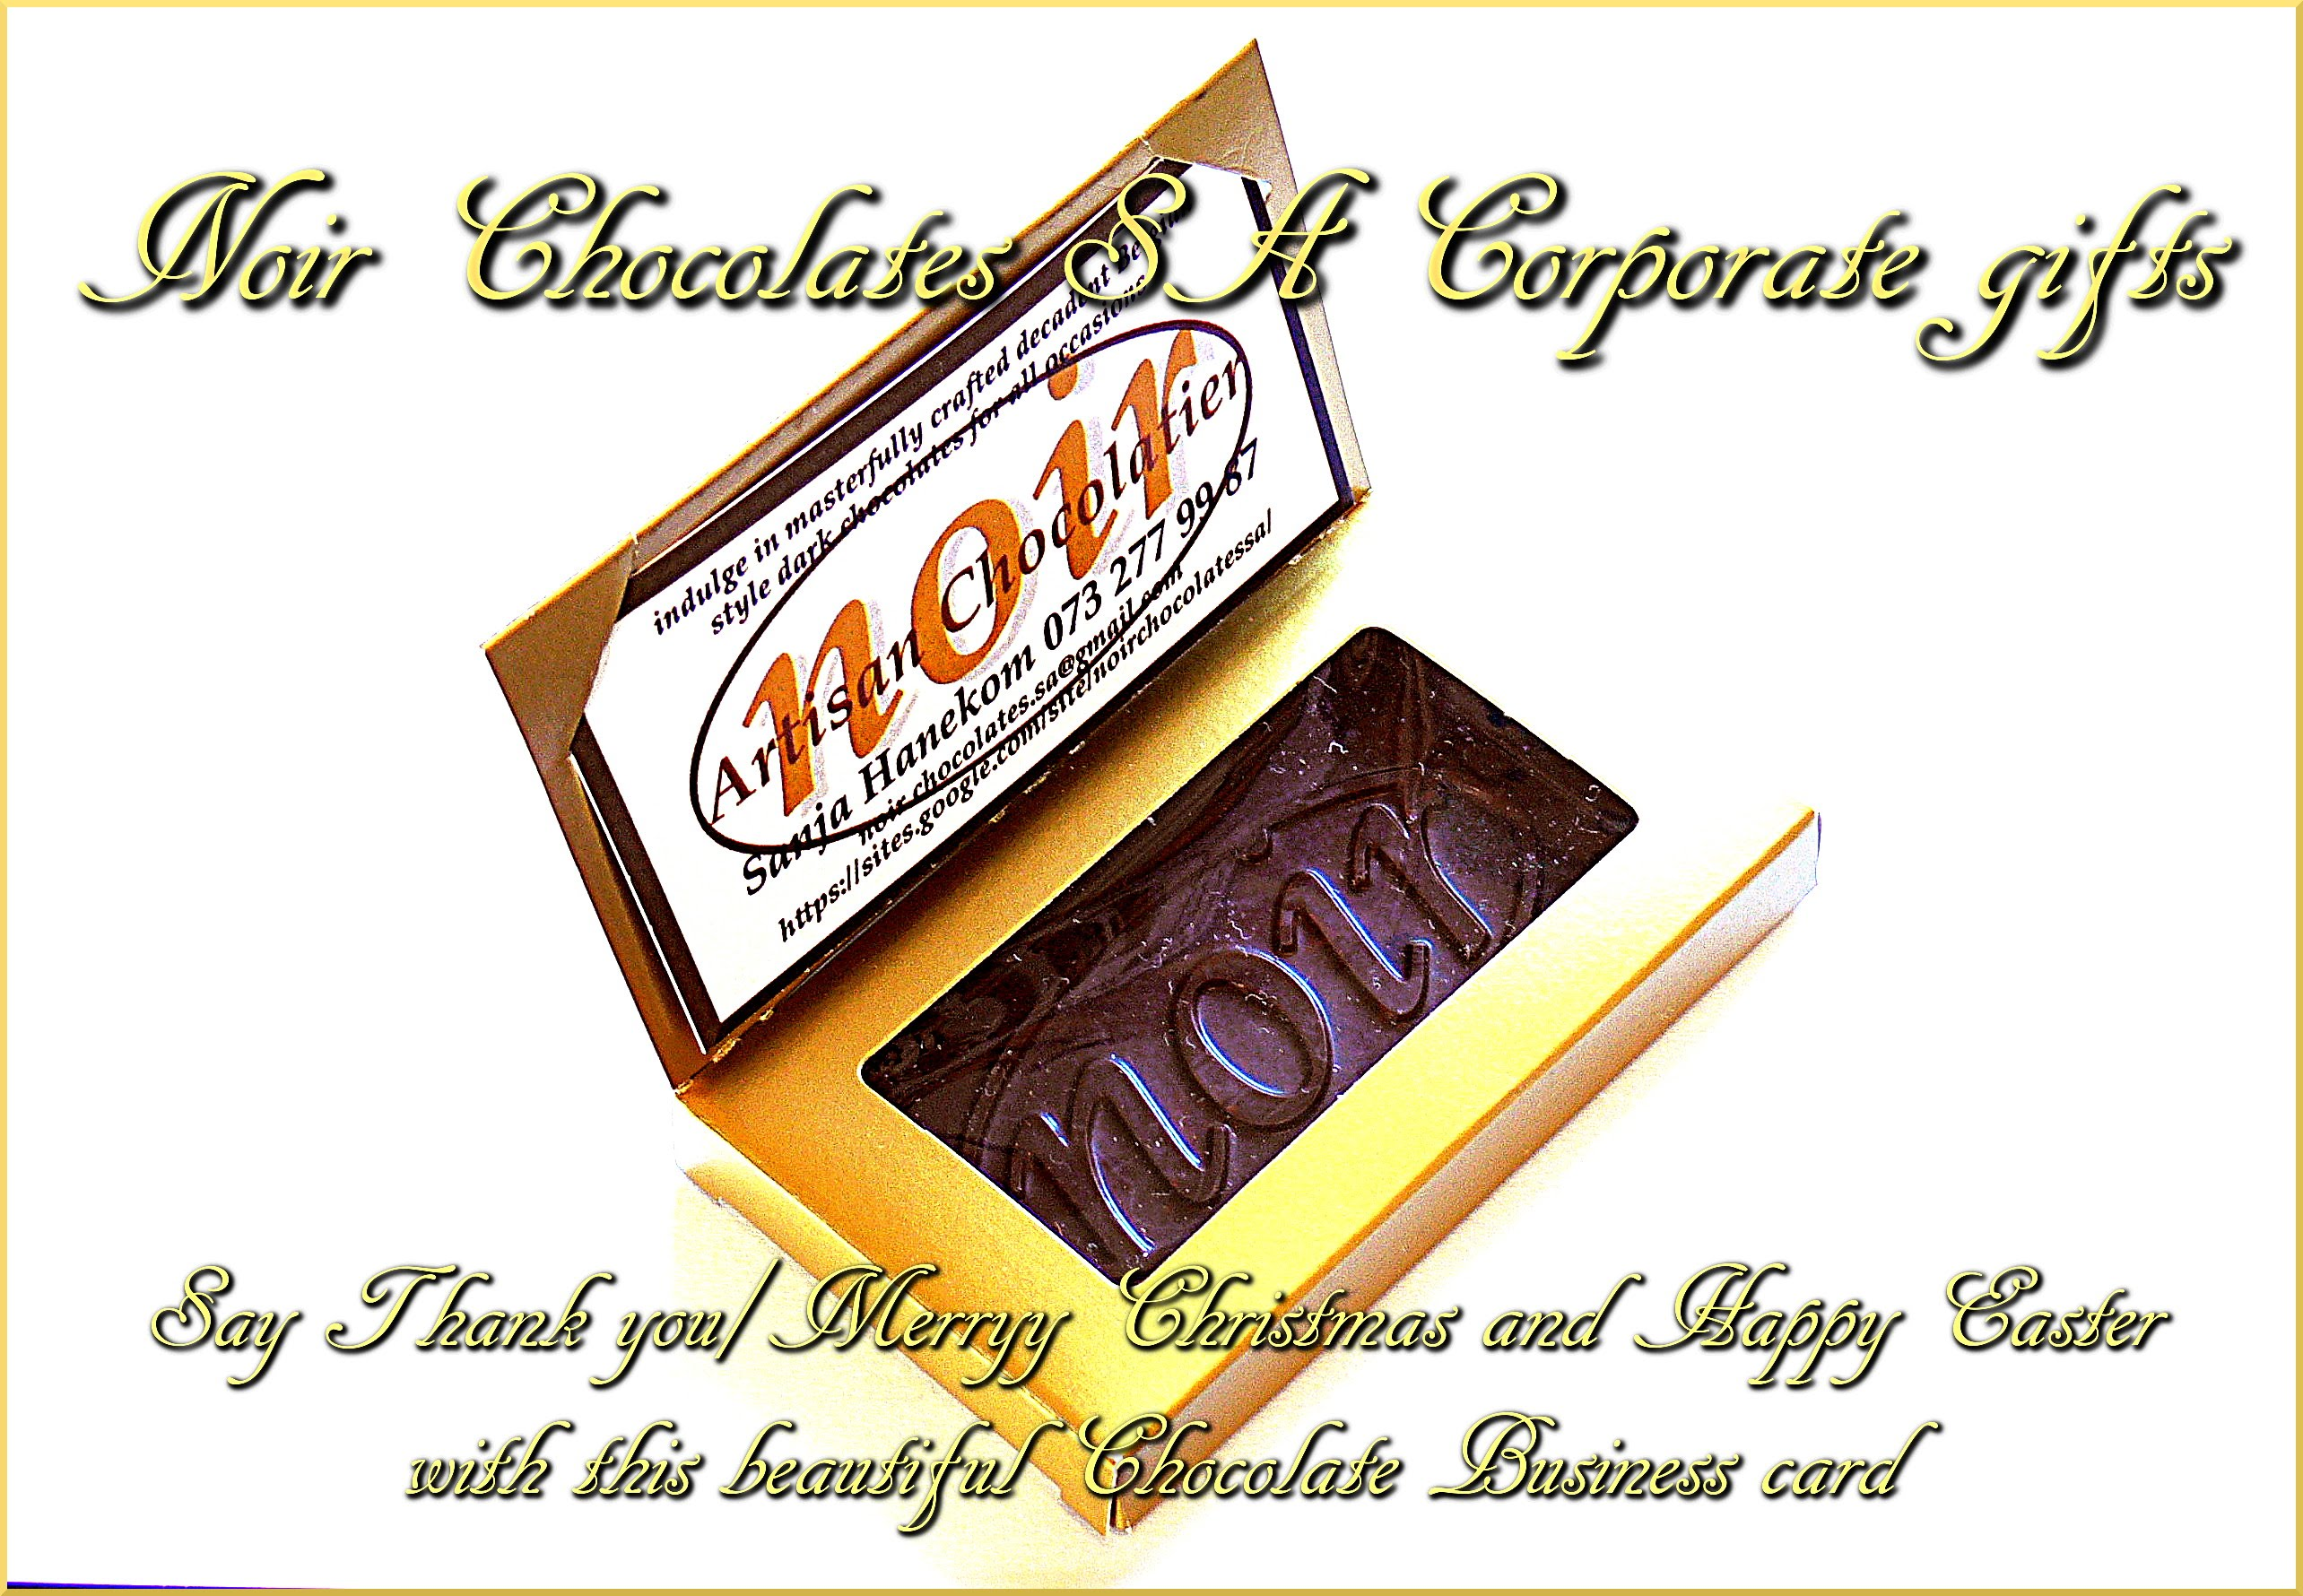 Corporate gifts card all messageseg give your clients gifts when you want to thank them for their past business when you want to welcome new clients and when you have just launched negle Gallery